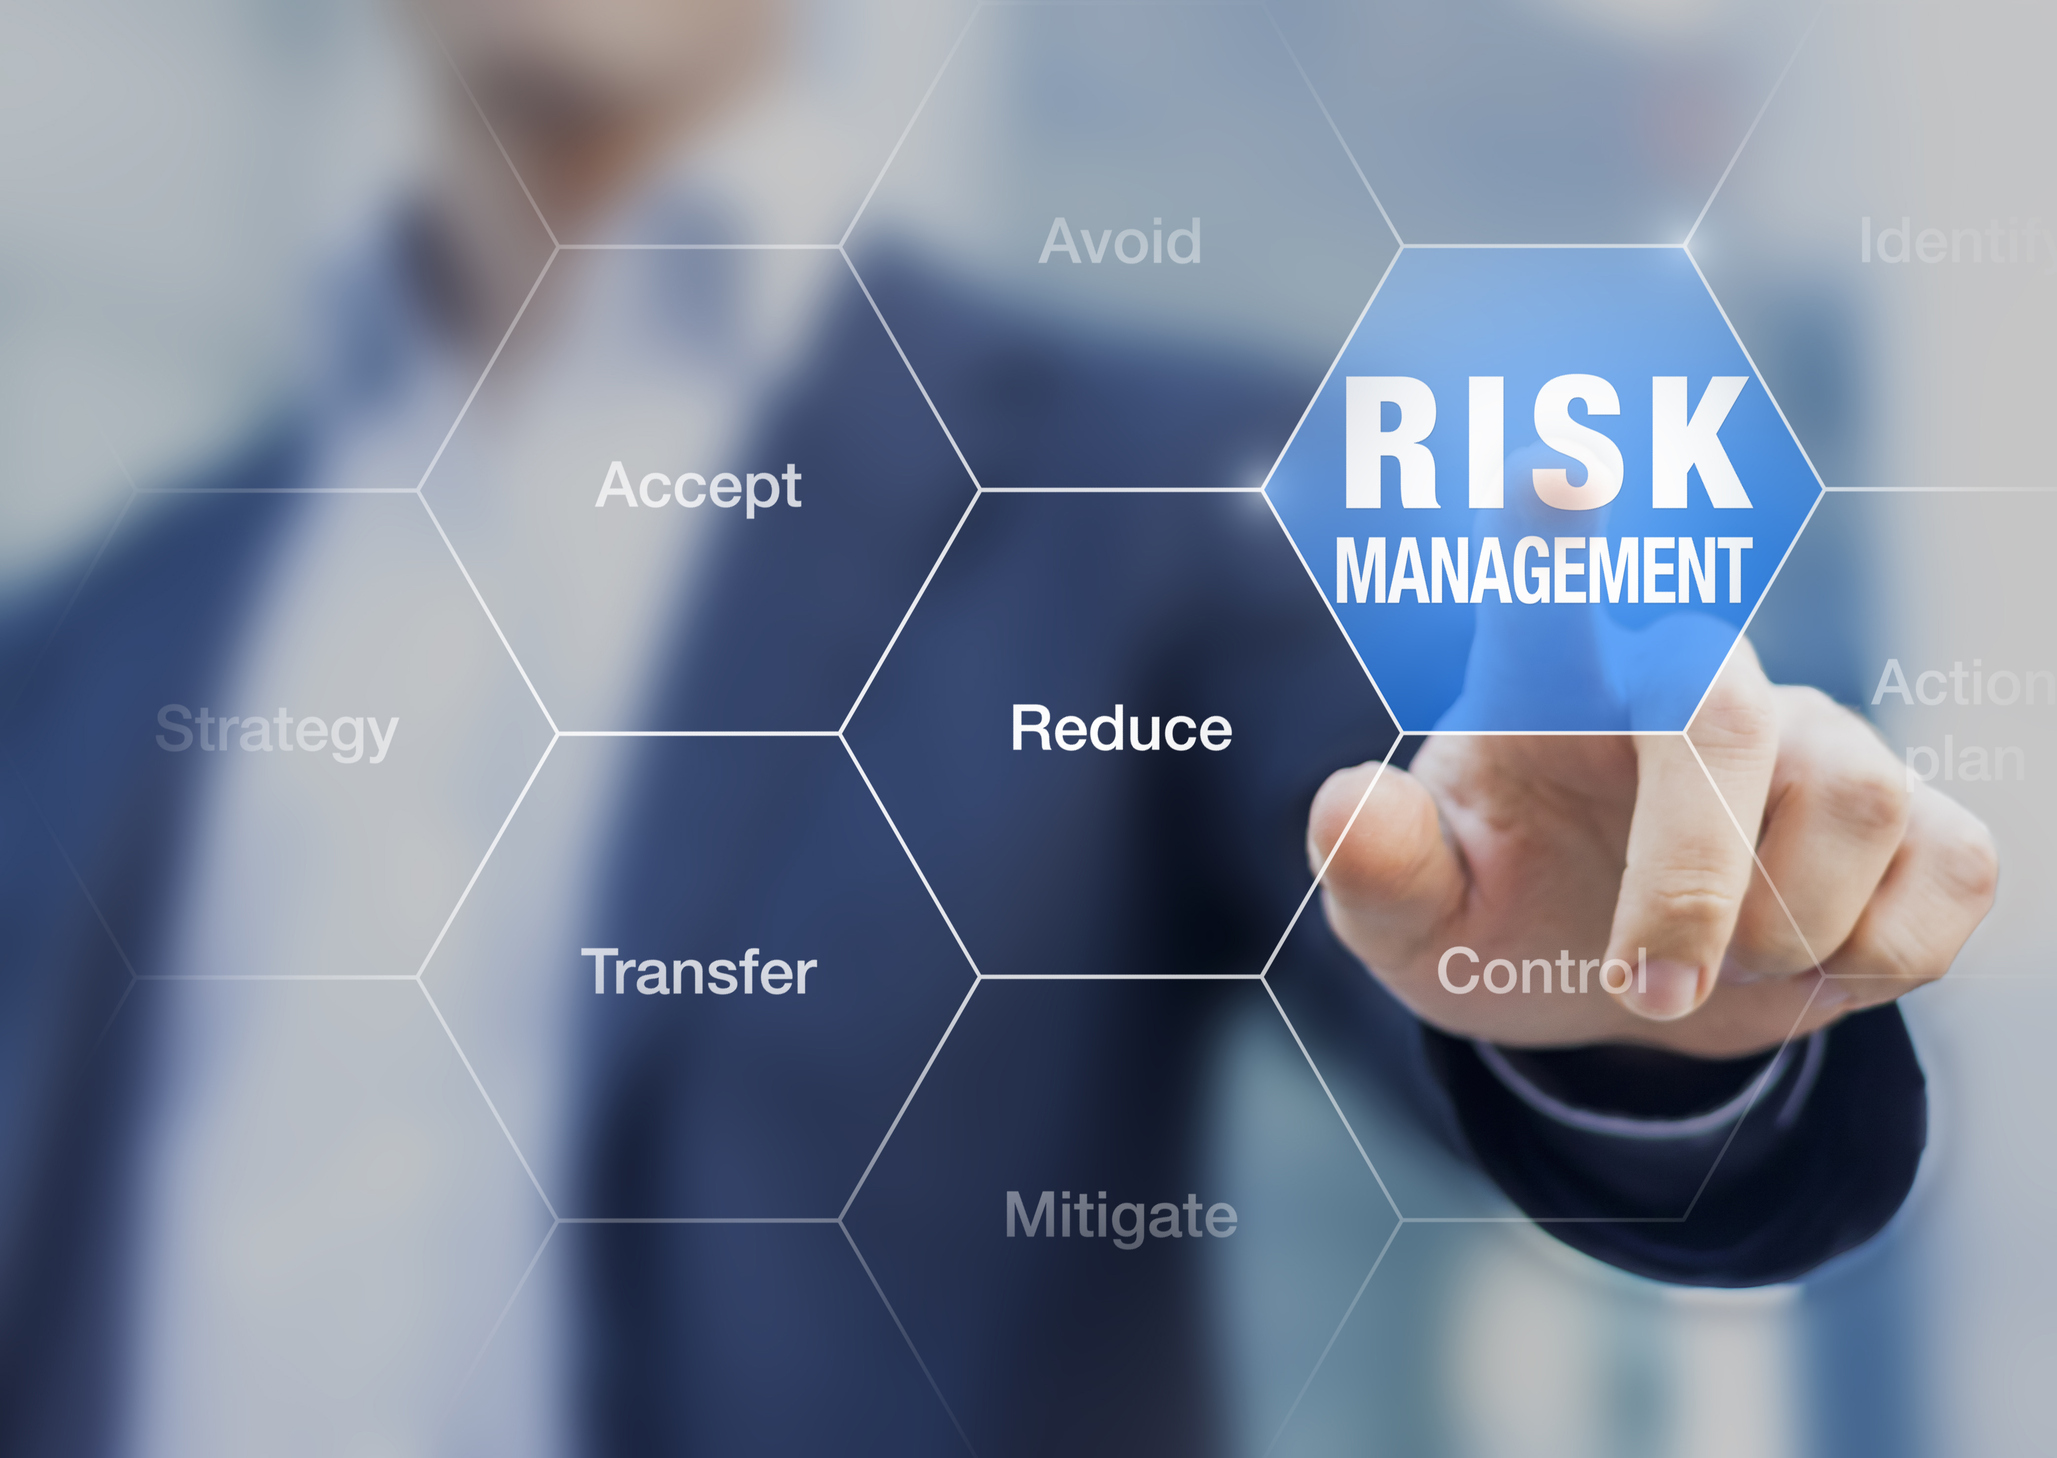 image of risk management focus for businesses